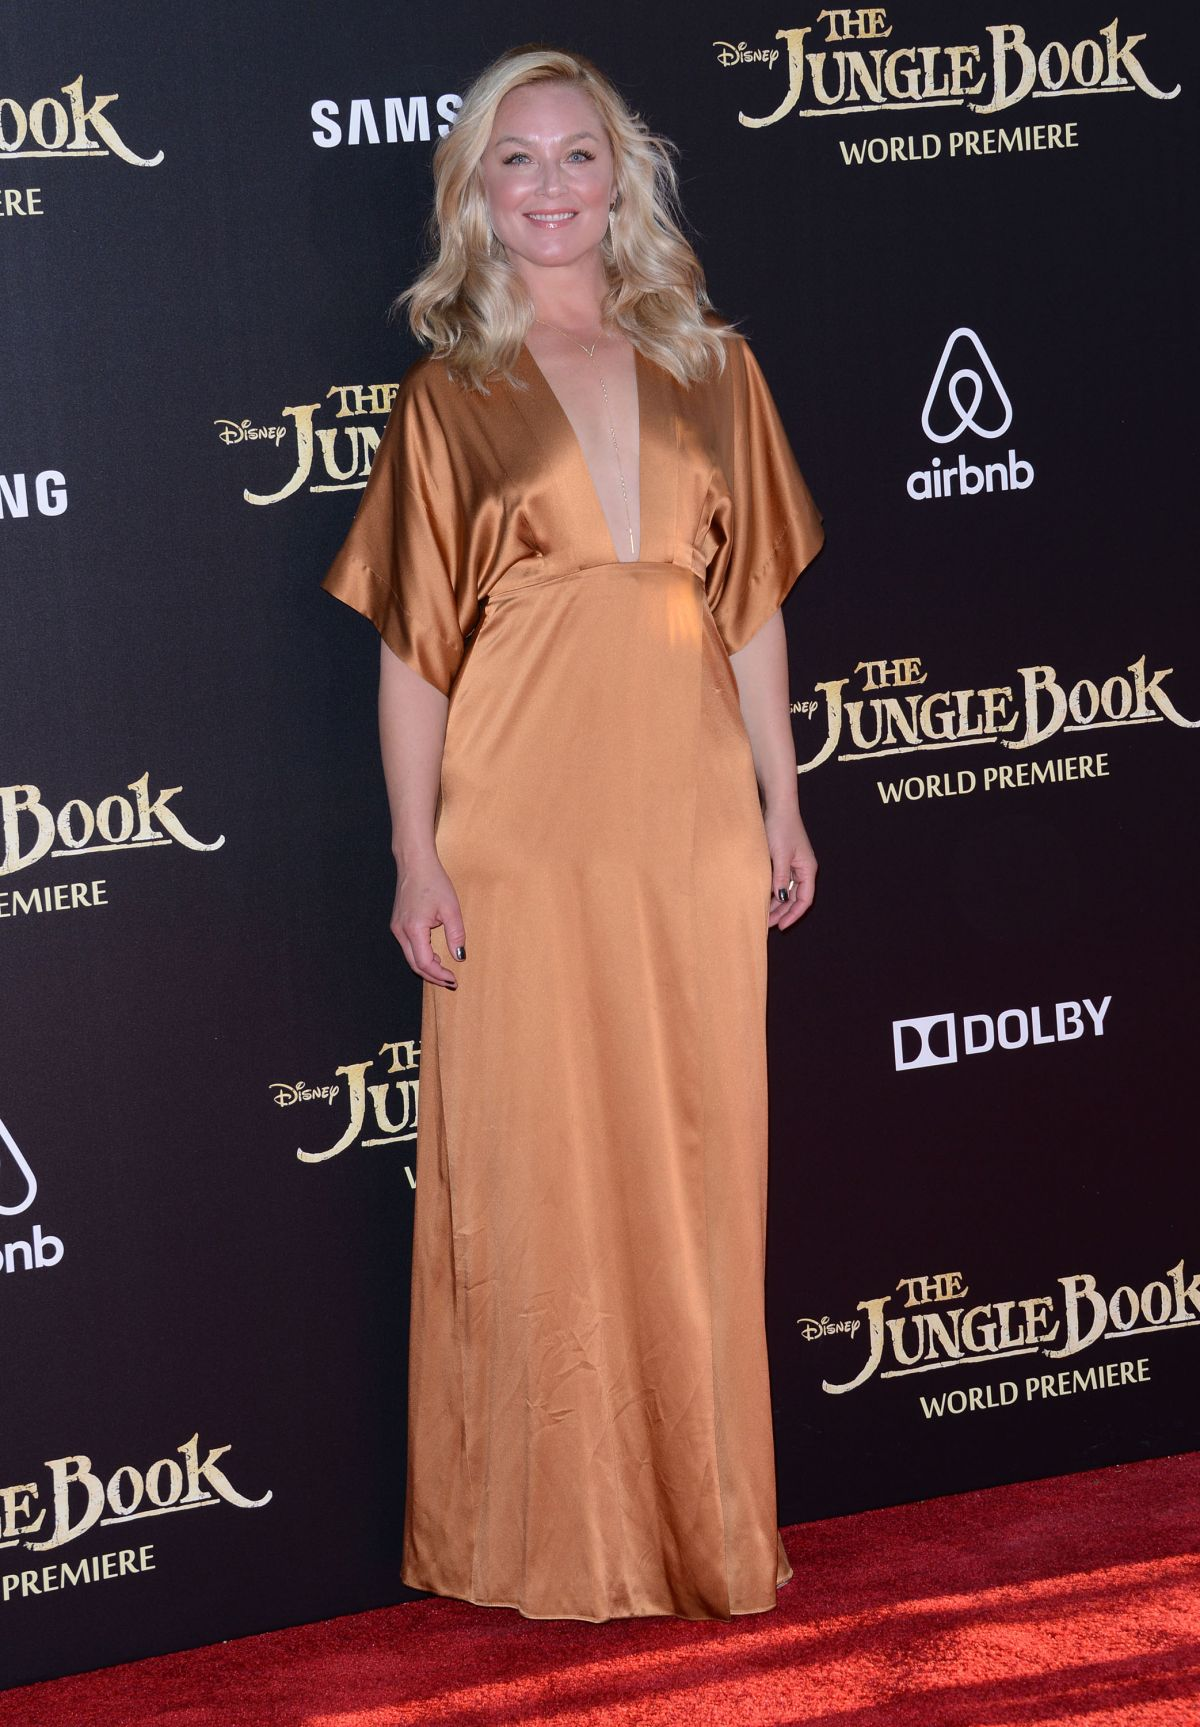 ELIZABETH ROHM at 'The Jungle Book' Premiere in Hollywood 04/04/2016